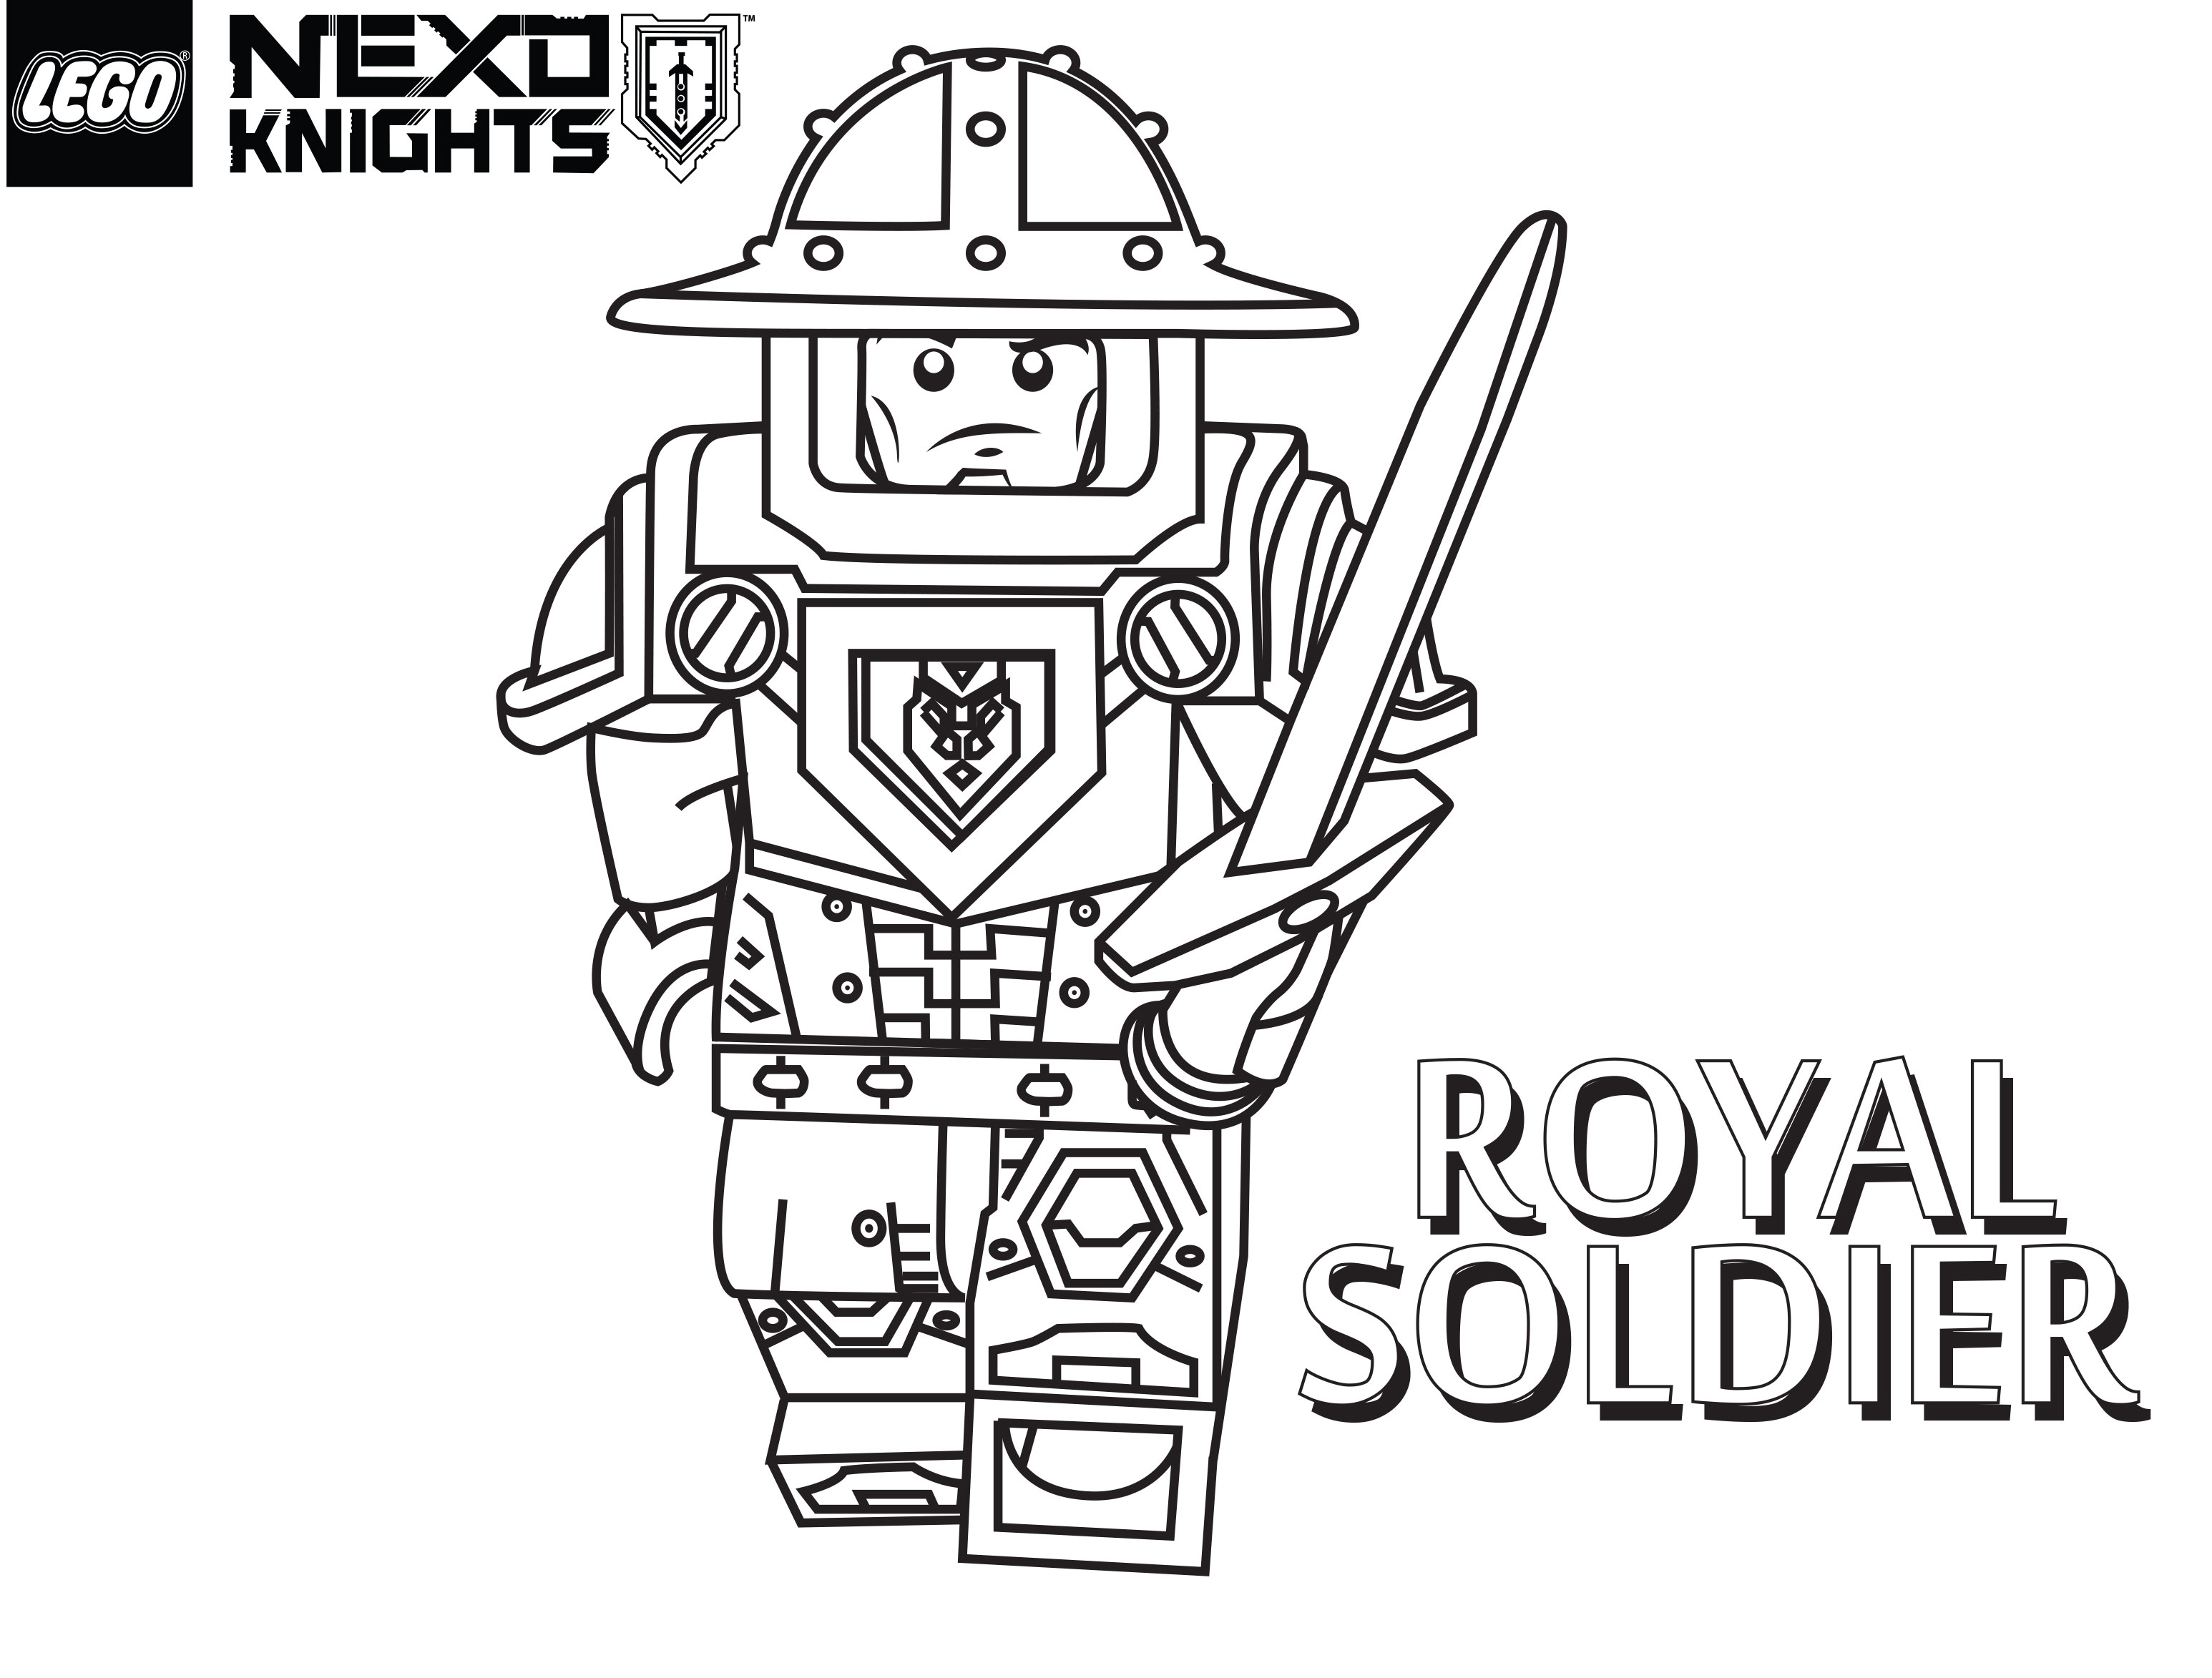 3092x2346 Lego Nexo Knights Coloring Pages Royal Soldier